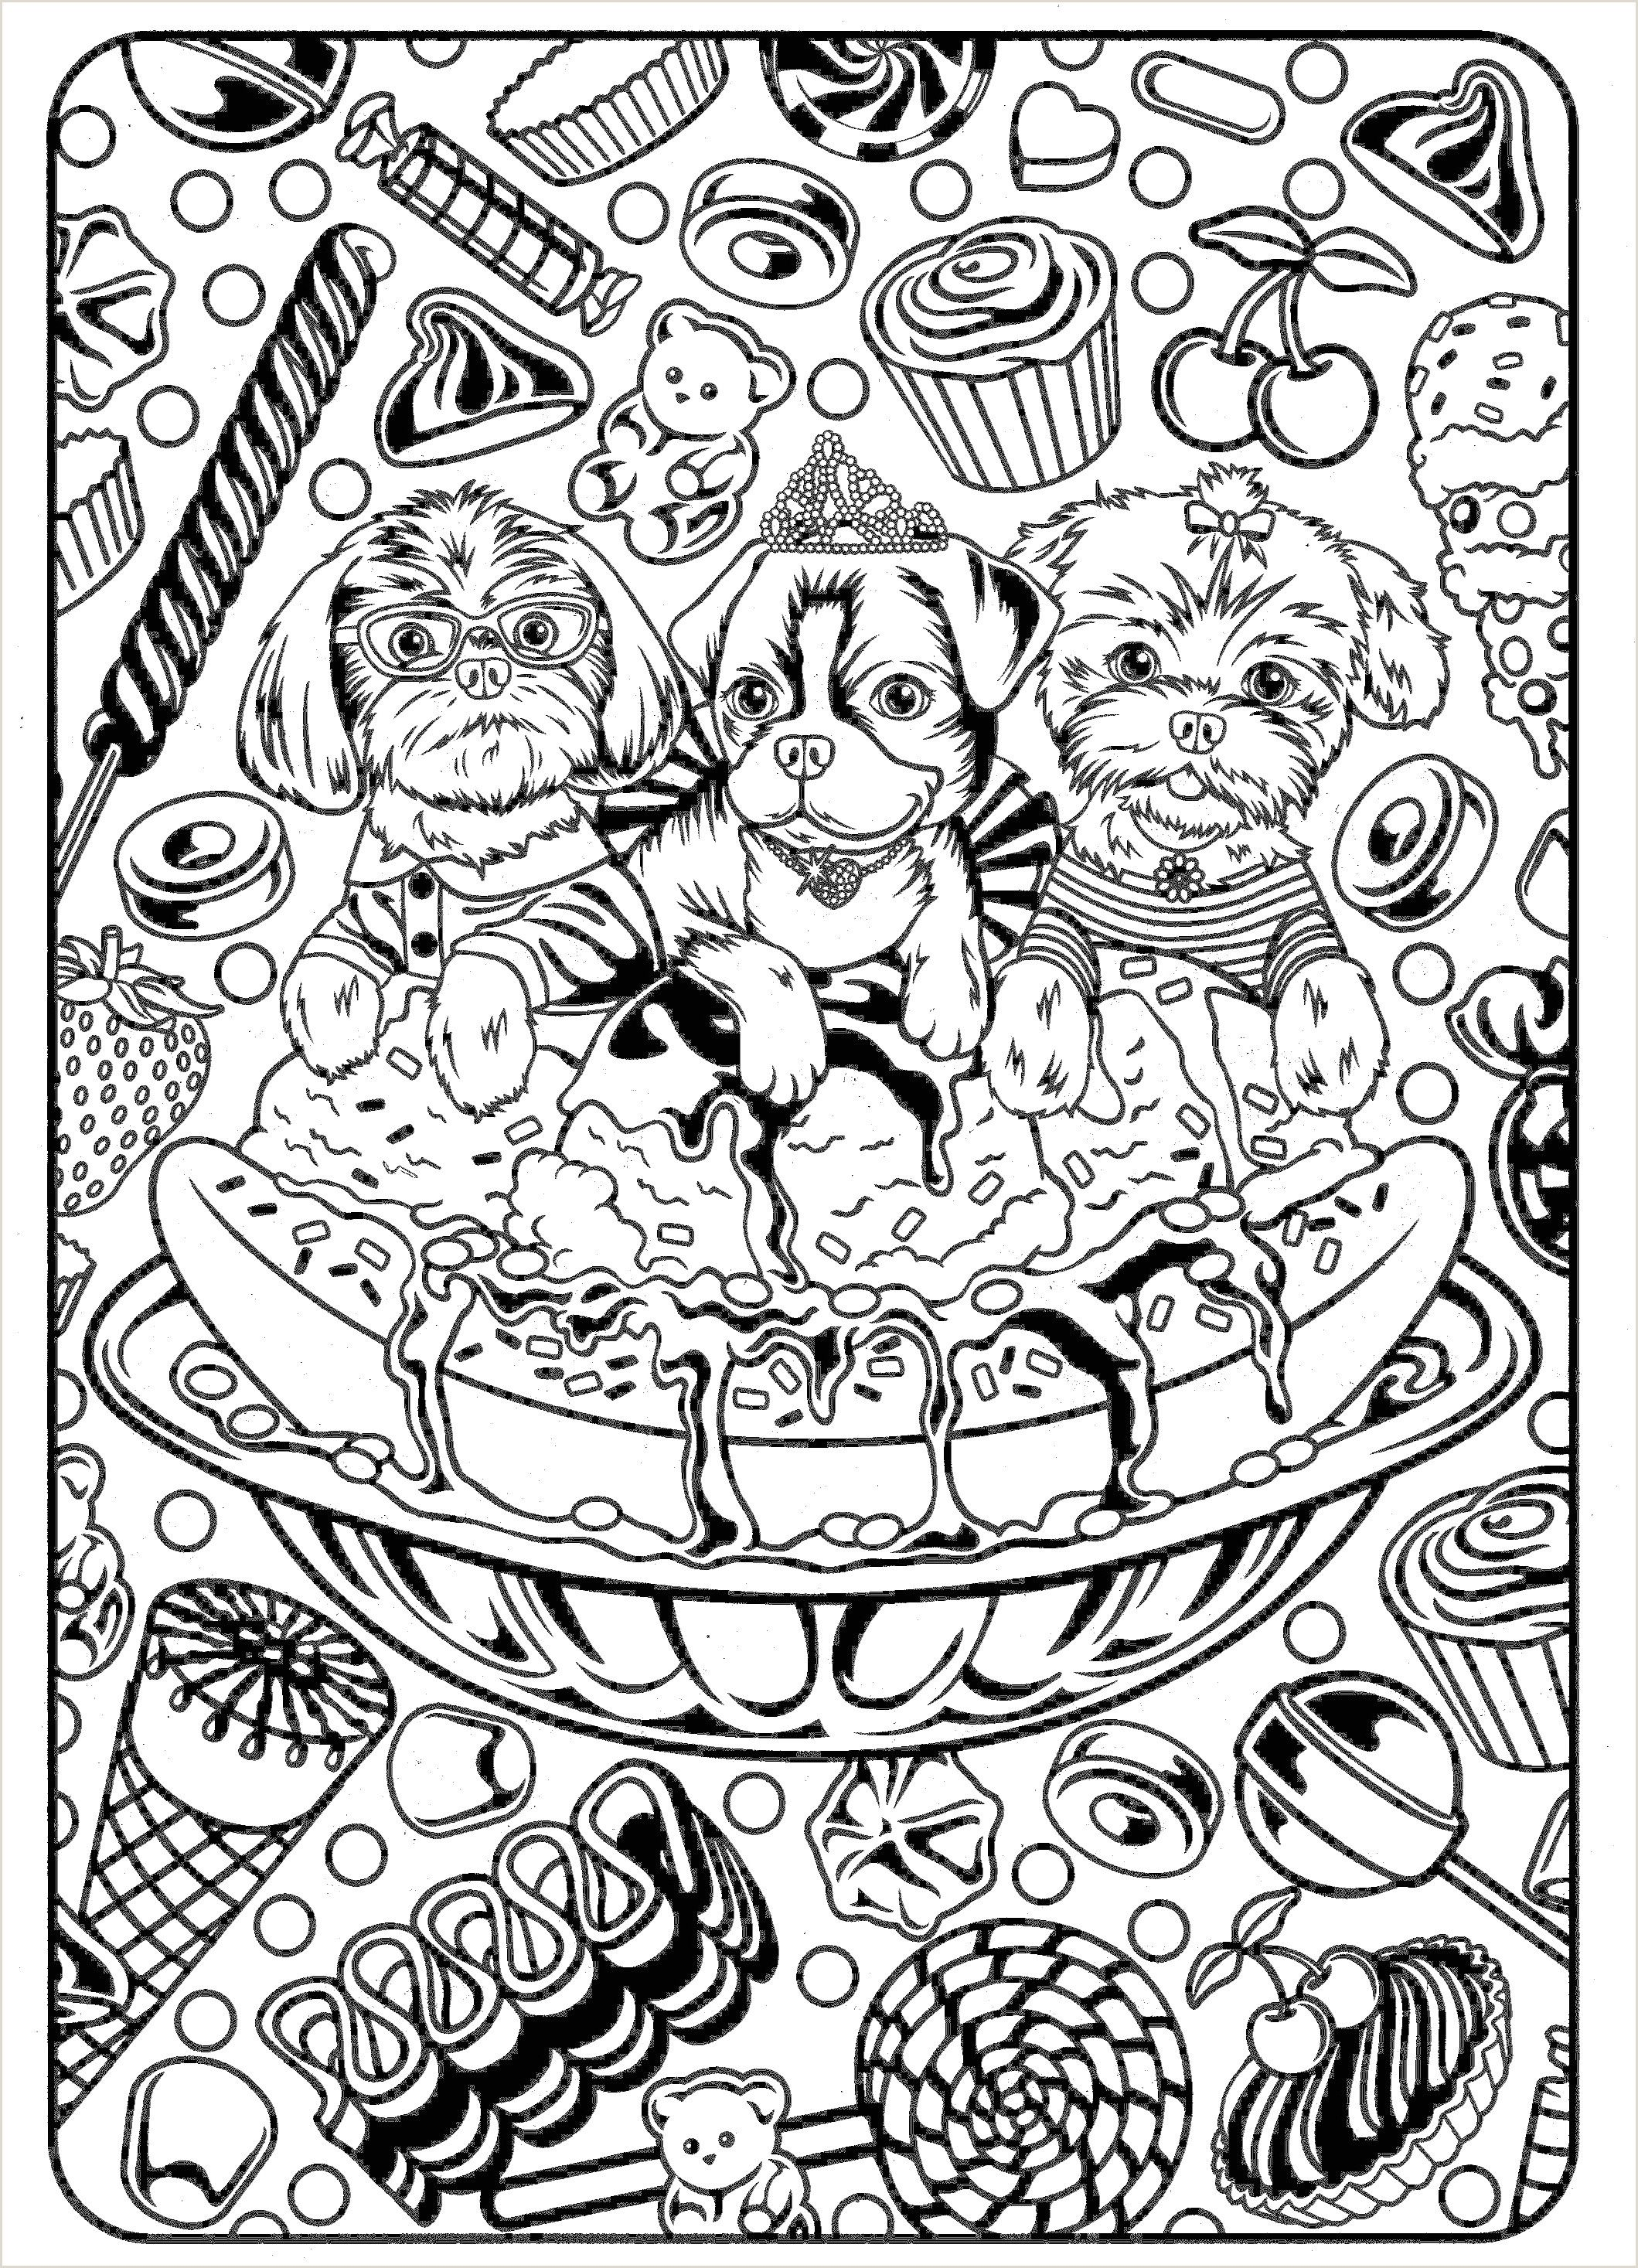 Free Printable Easy Adult Coloring Pages | Mandala coloring pages ... | 2934x2119